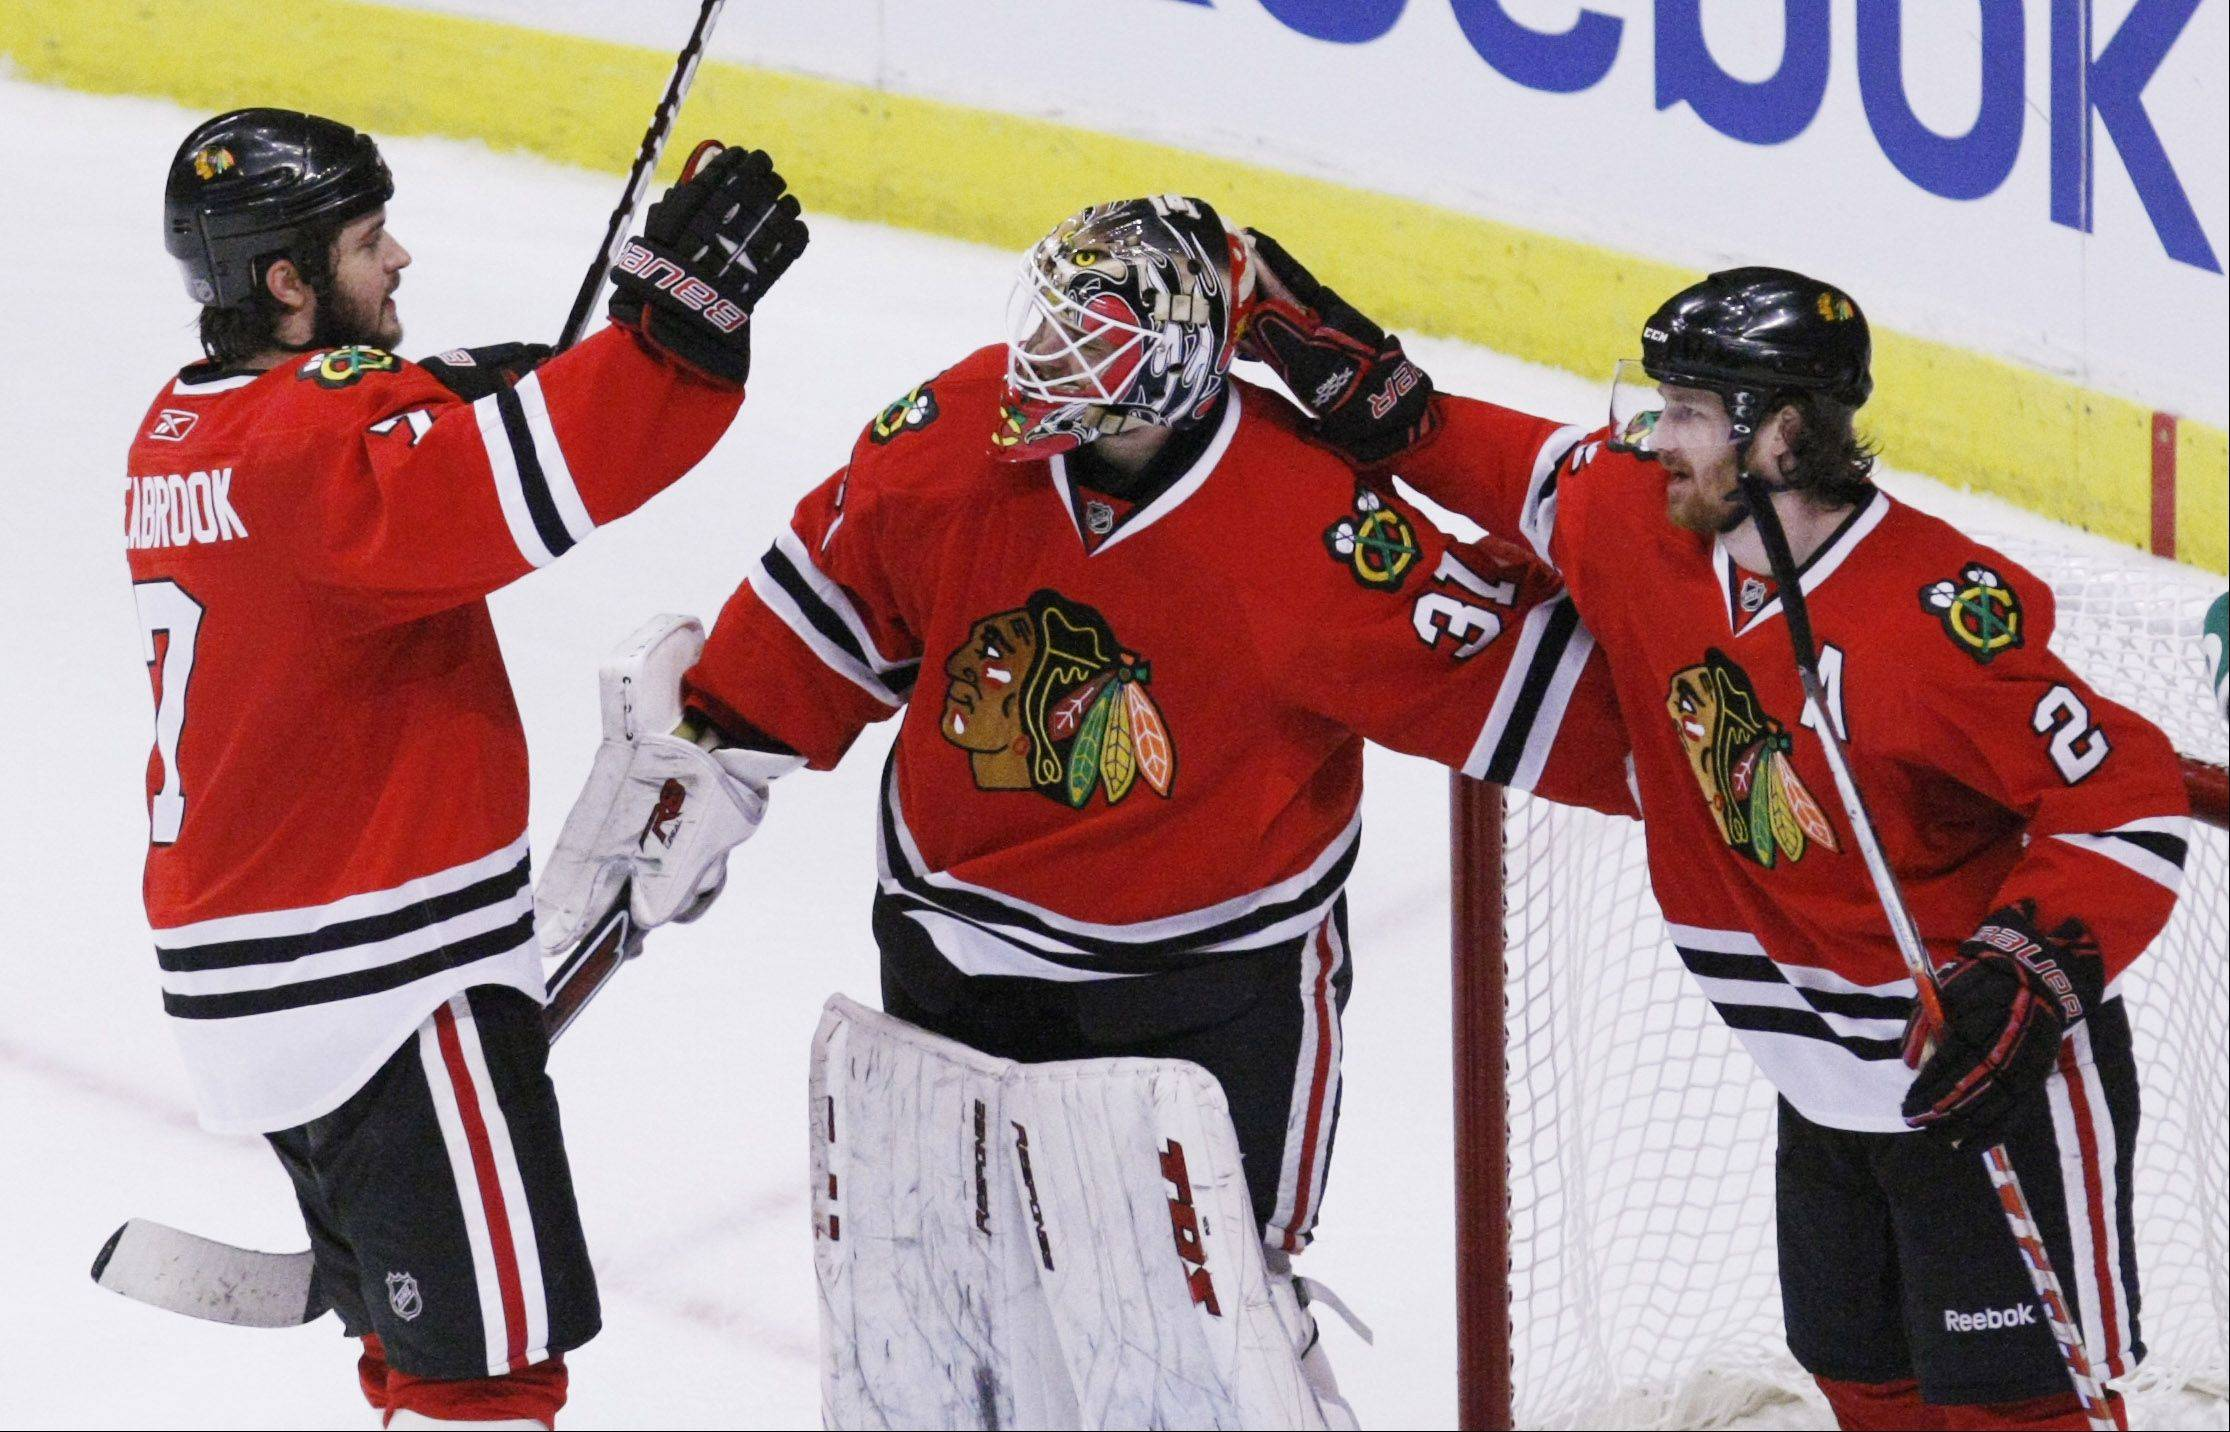 Blackhawks defenseman Brent Seabrook, left, and Duncan Keith, right celebrate with goalie Antti Niemi their 4-2 win over the San Jose Sharks in Game 4 of the NHL Western Conference finals Sunday, May 23, 2010 in Chicago. The Blackhawks swept the series 4-0.